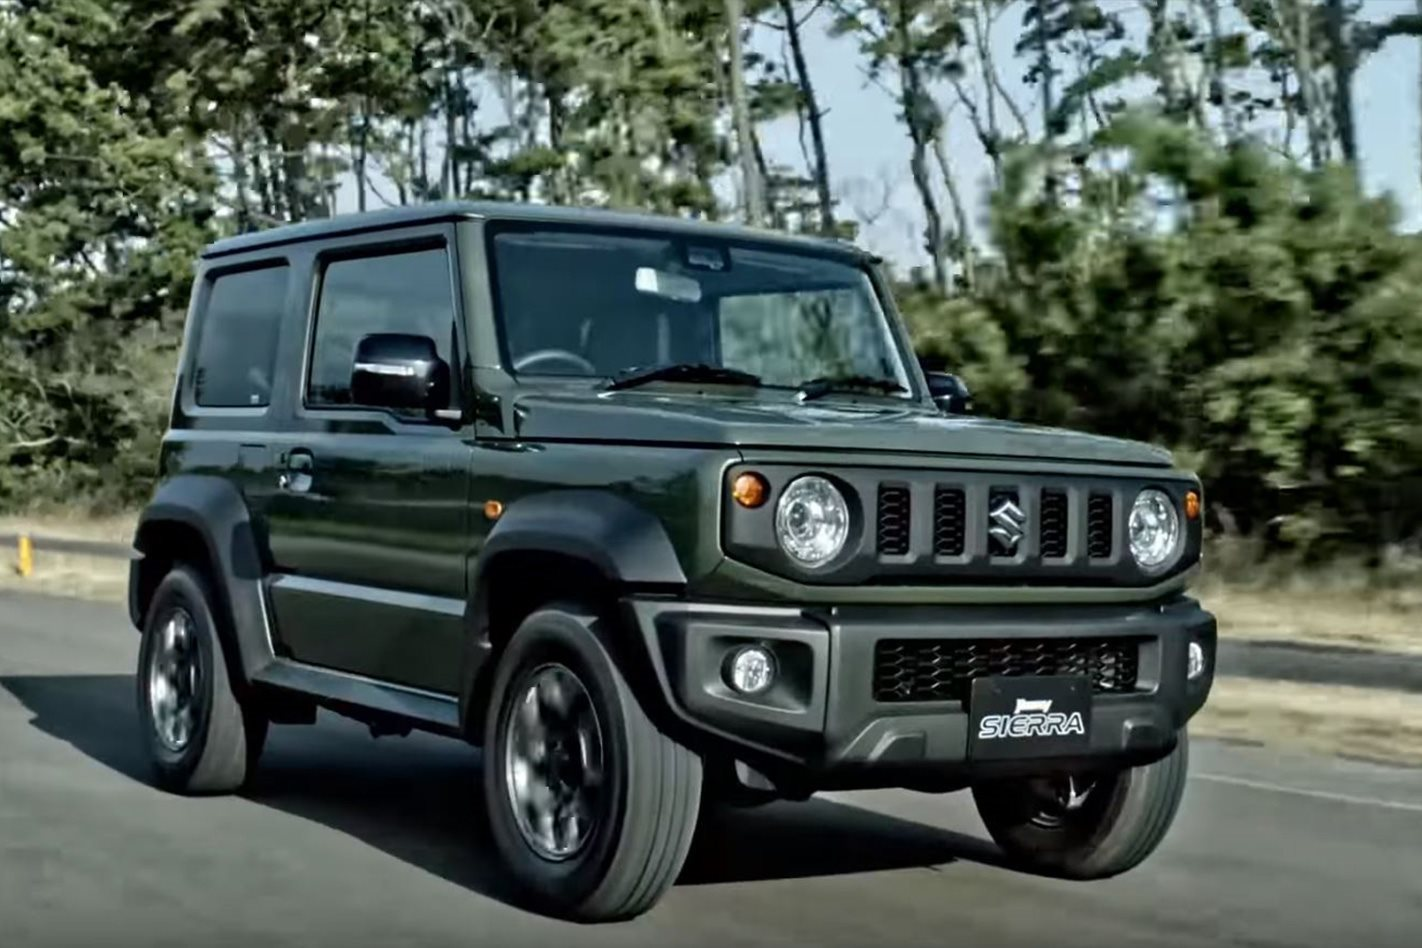 67 All New 2020 Suzuki Jimny Interior